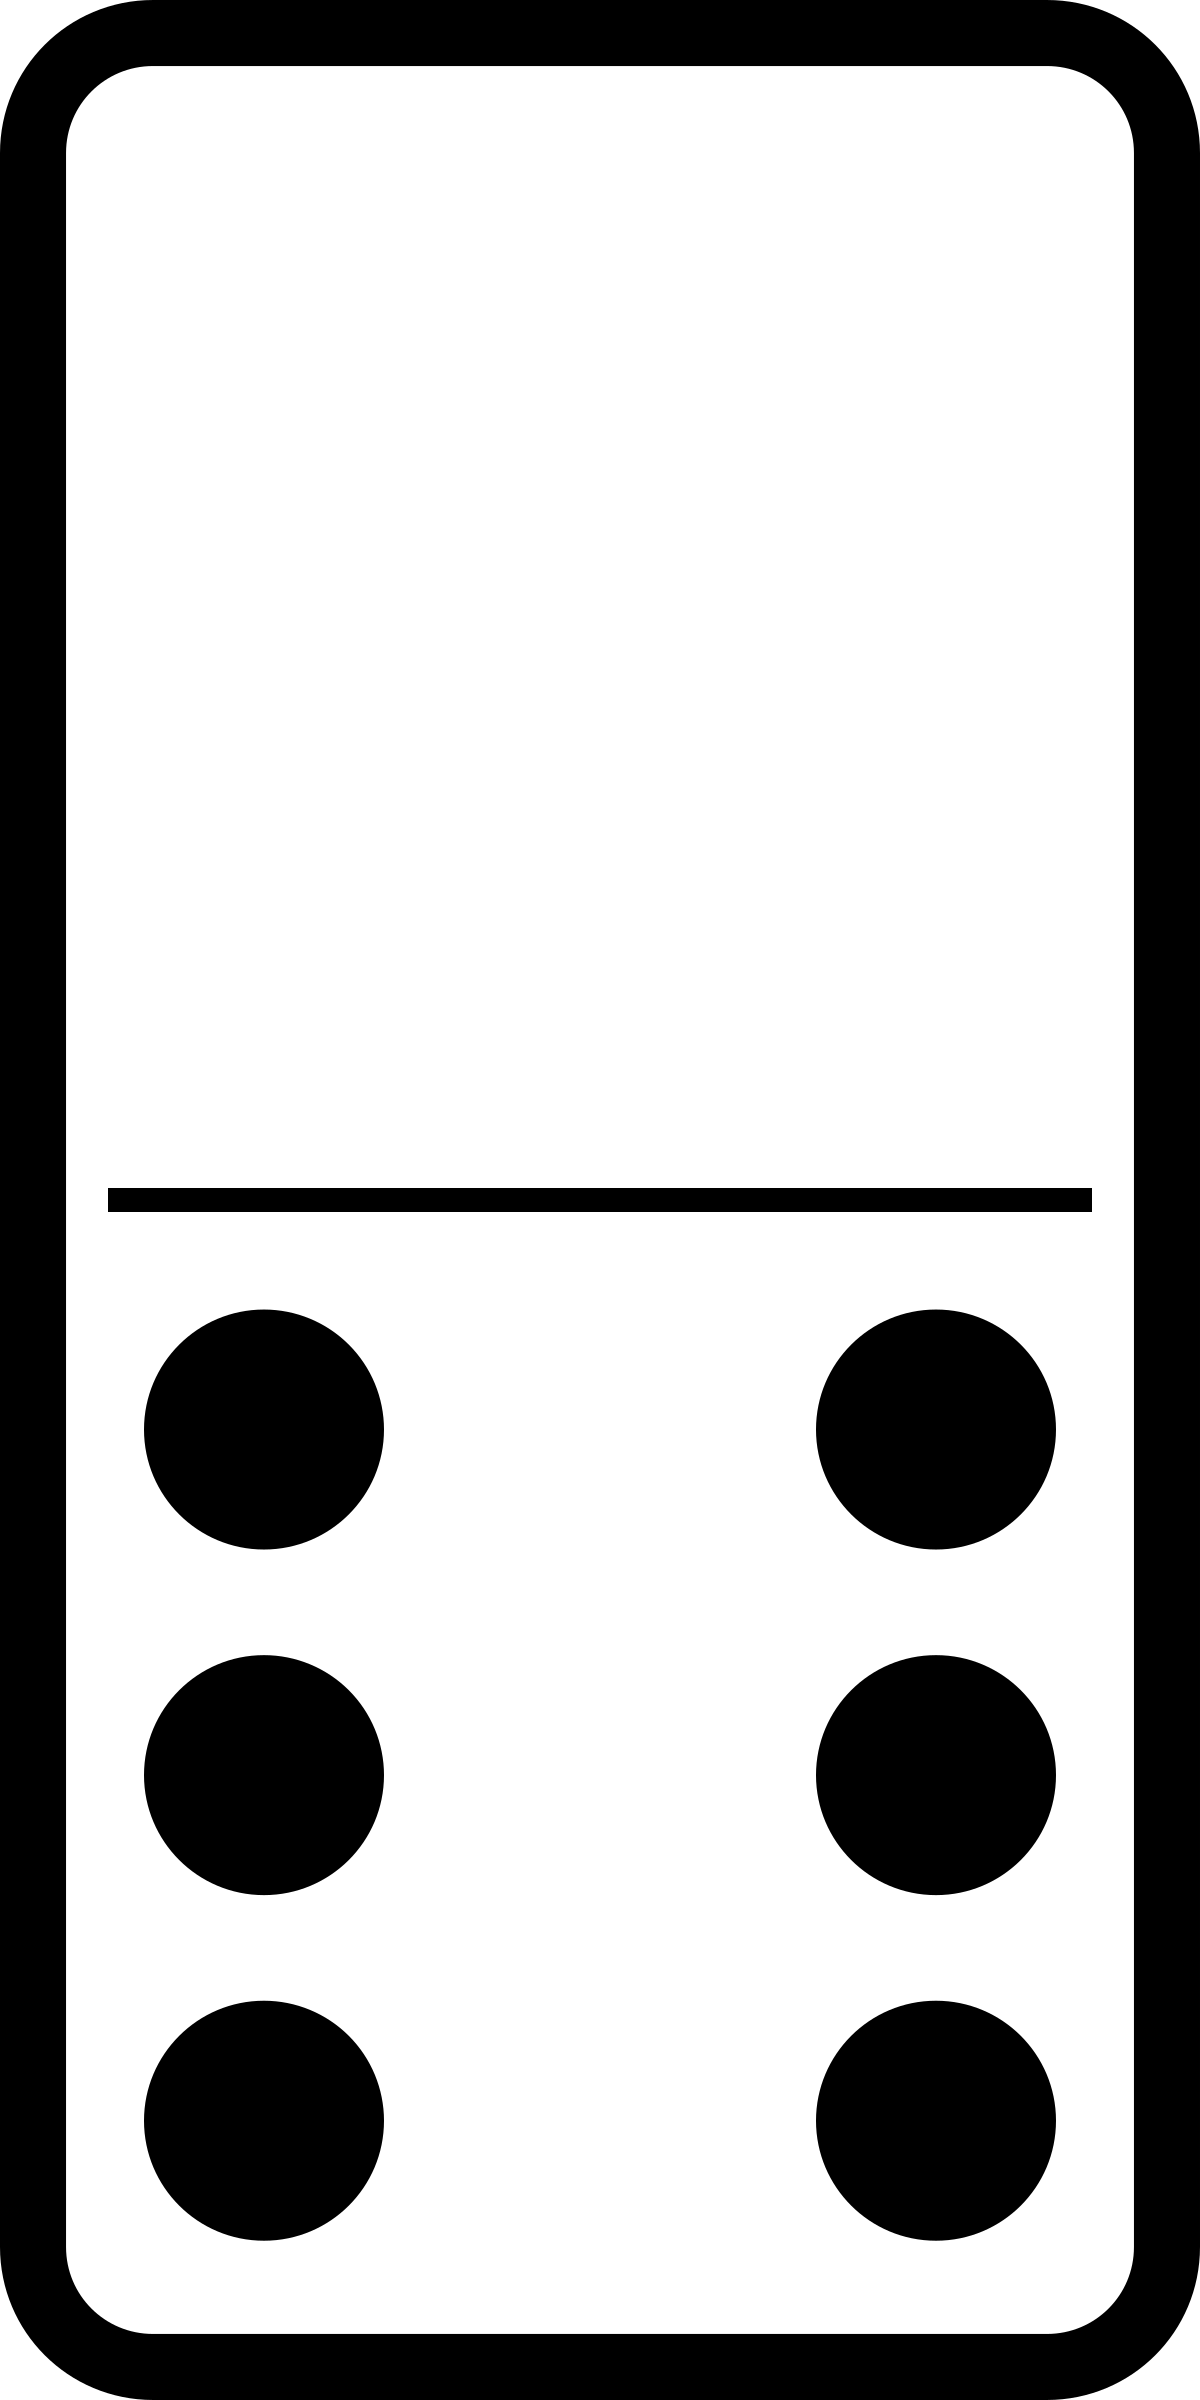 domino set 6 by molumen